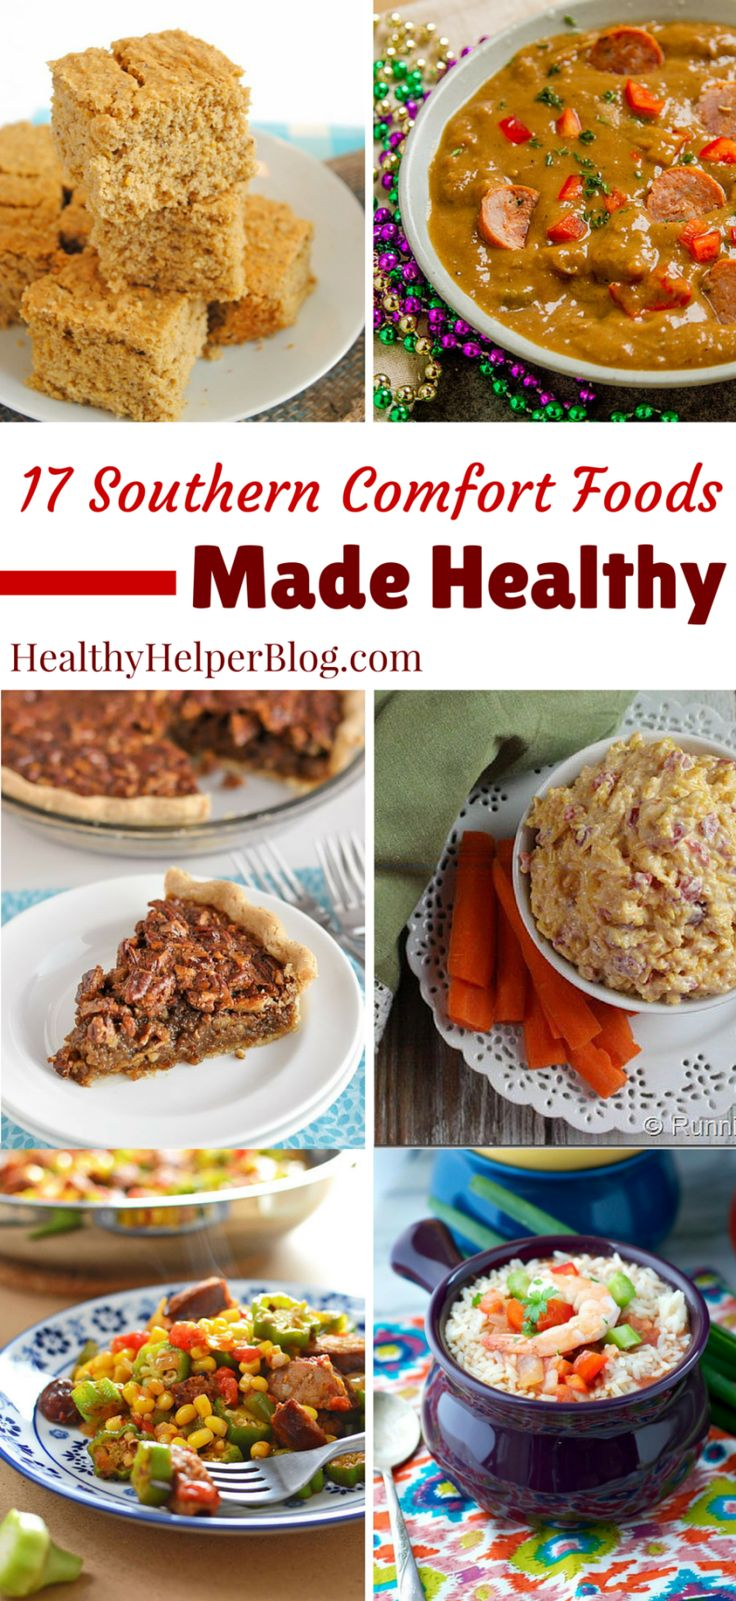 17 Southern Comfort Foods Made Healthy from Healthy Helper Blog...all the foods and flavors you love made nutritious and delicious! From Jambalaya to Pecan Pie...this roundup has it all! http://healthyhelperblog.com?utm_source=utm_source%3DPinterest&utm_medium=utm_medium%3Dsocialmedia&utm_campaign=utm_campaign%3Dblogpost